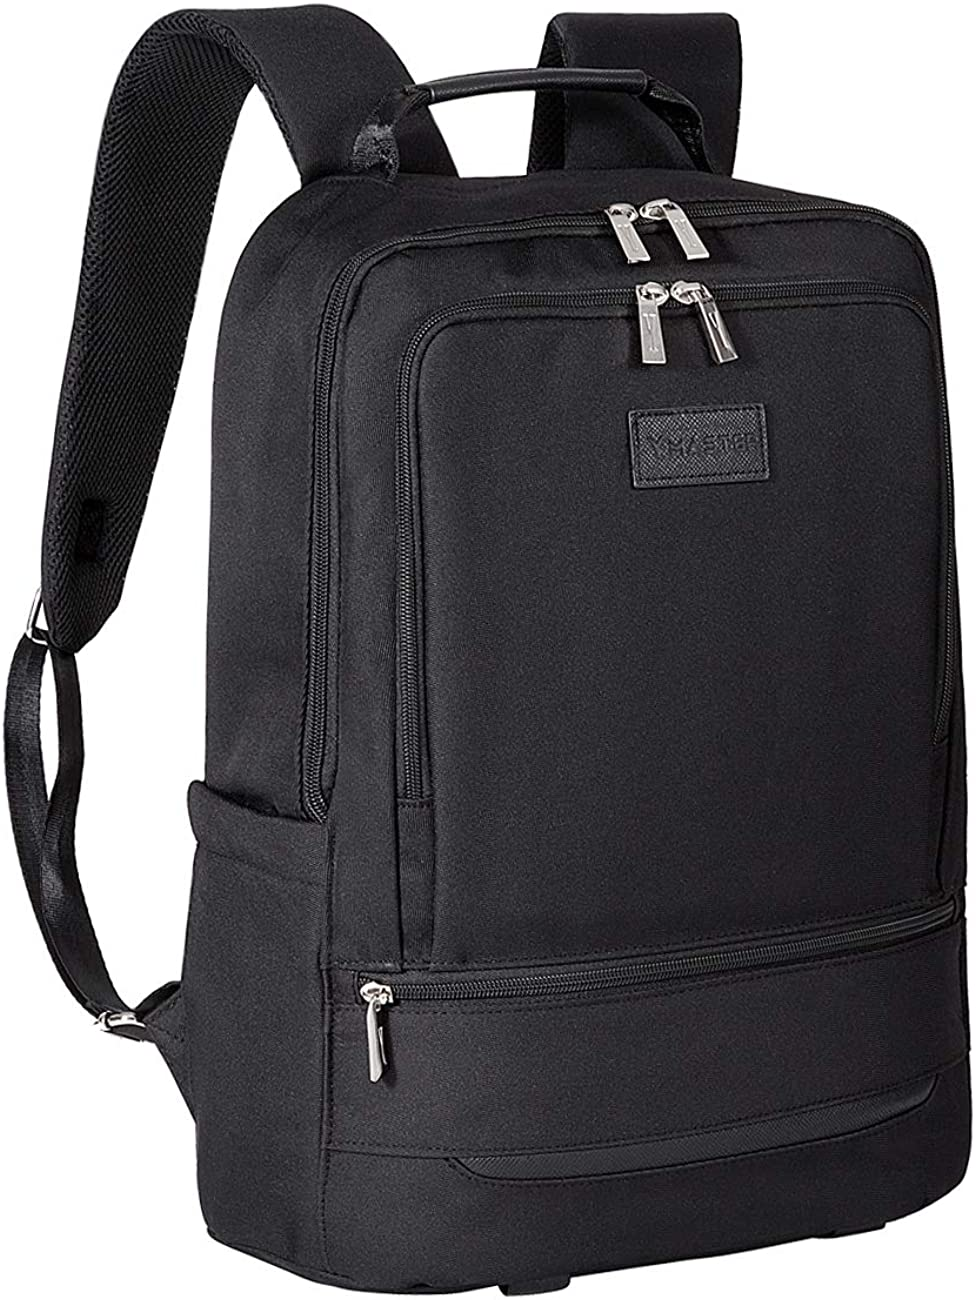 "XZP College Backpack for Men Women Traveling Carry on, 15.6"" Laptop School Bag"